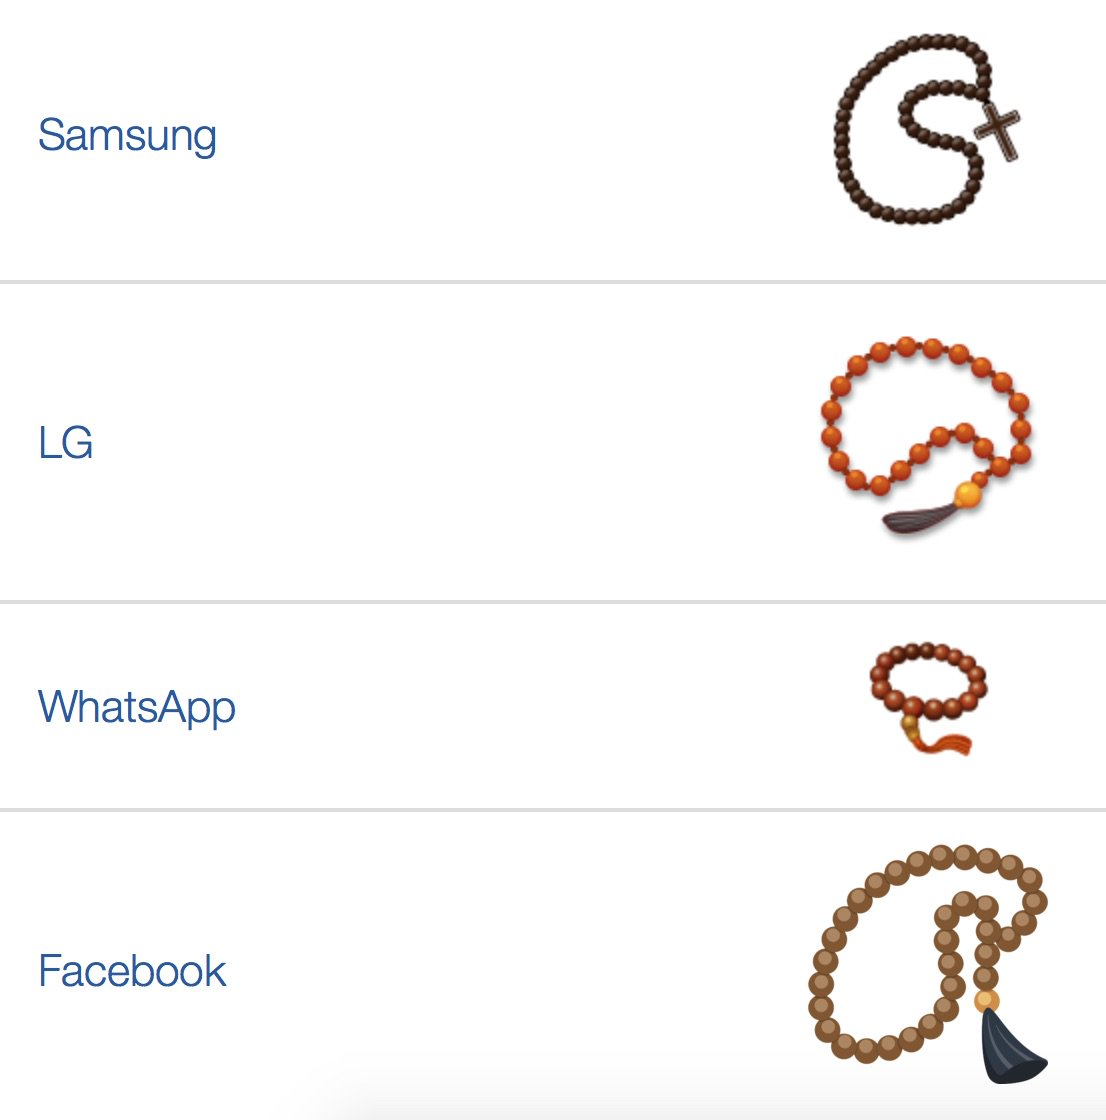 misty on twitter til the prayer bead emoji is obviously buddhist